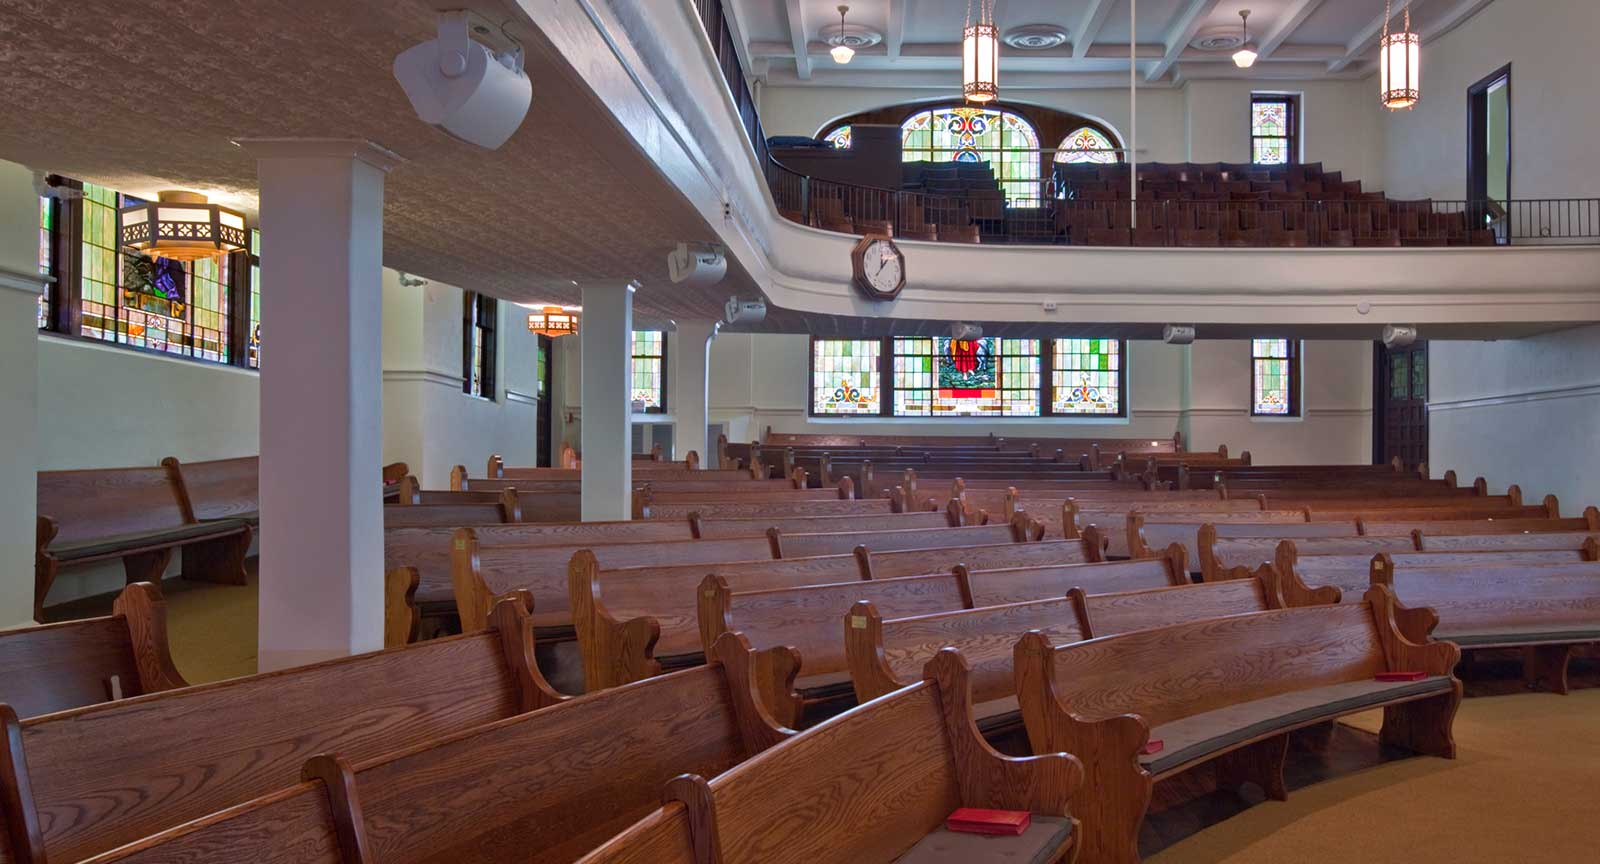 Dallas Arts District St. Paul United Methodist Interior Pews